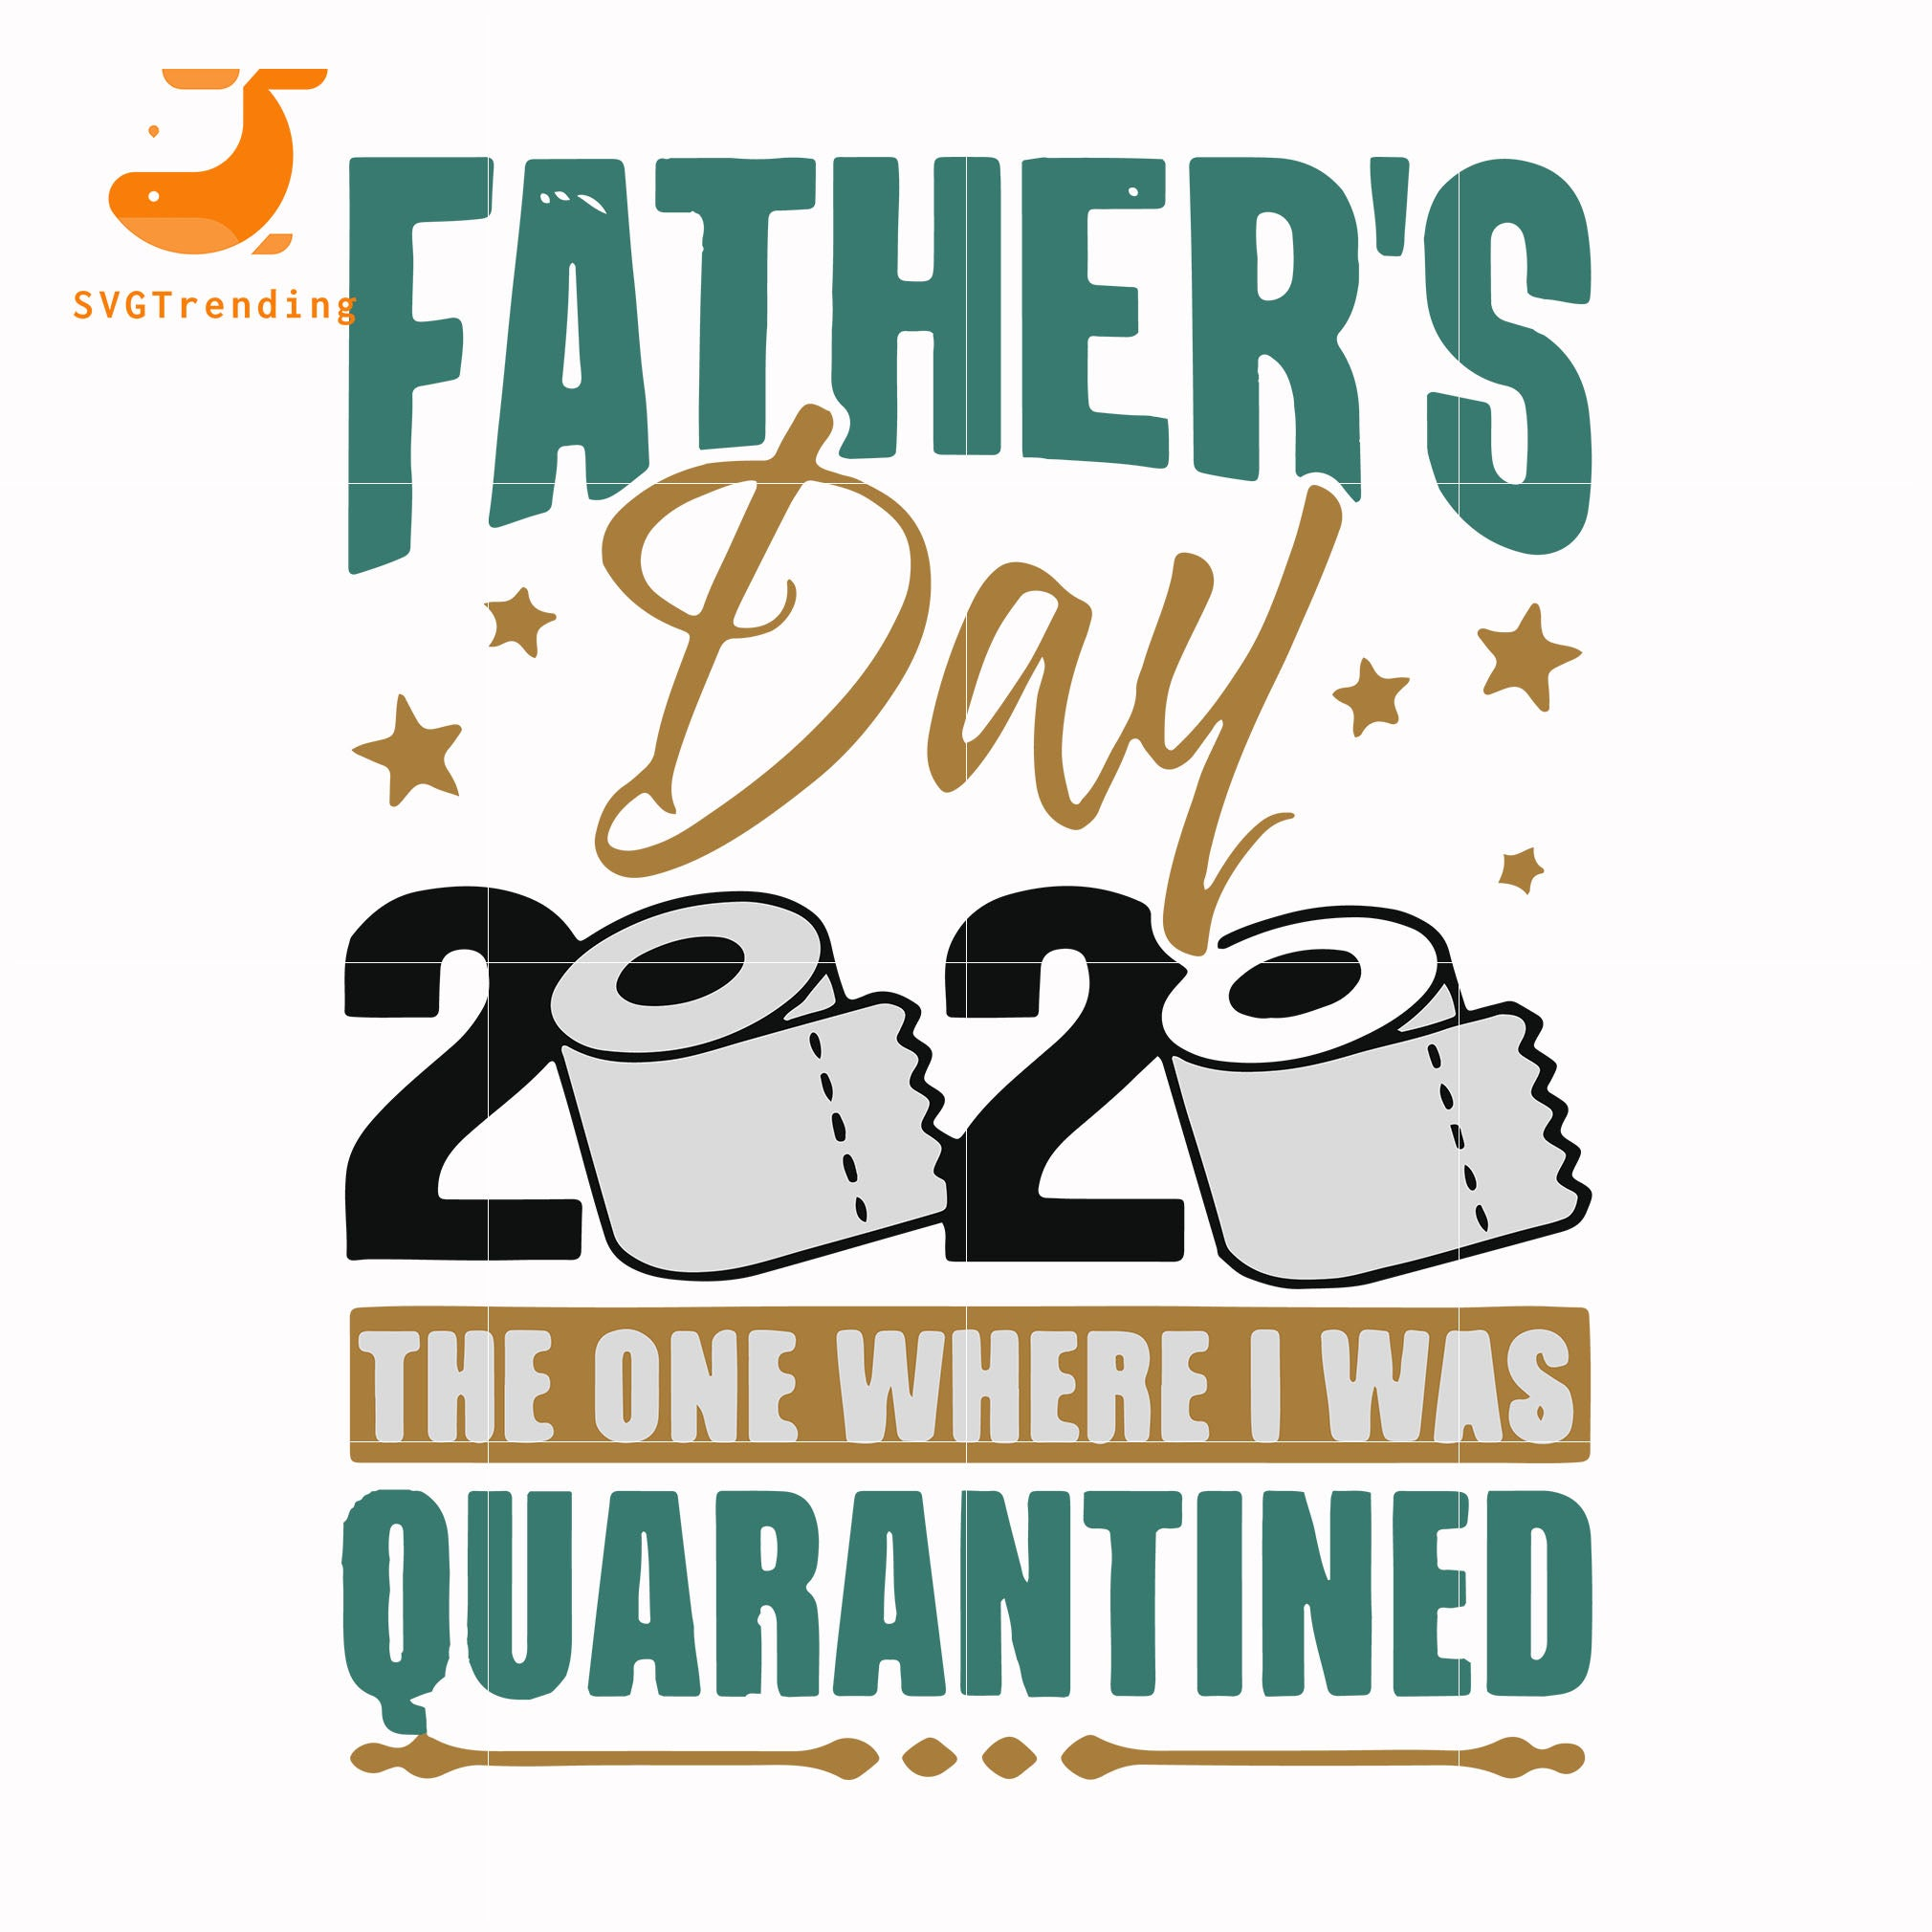 father day 2020 the one where i was quarantined svg, png, dxf, eps, digital file FTD4